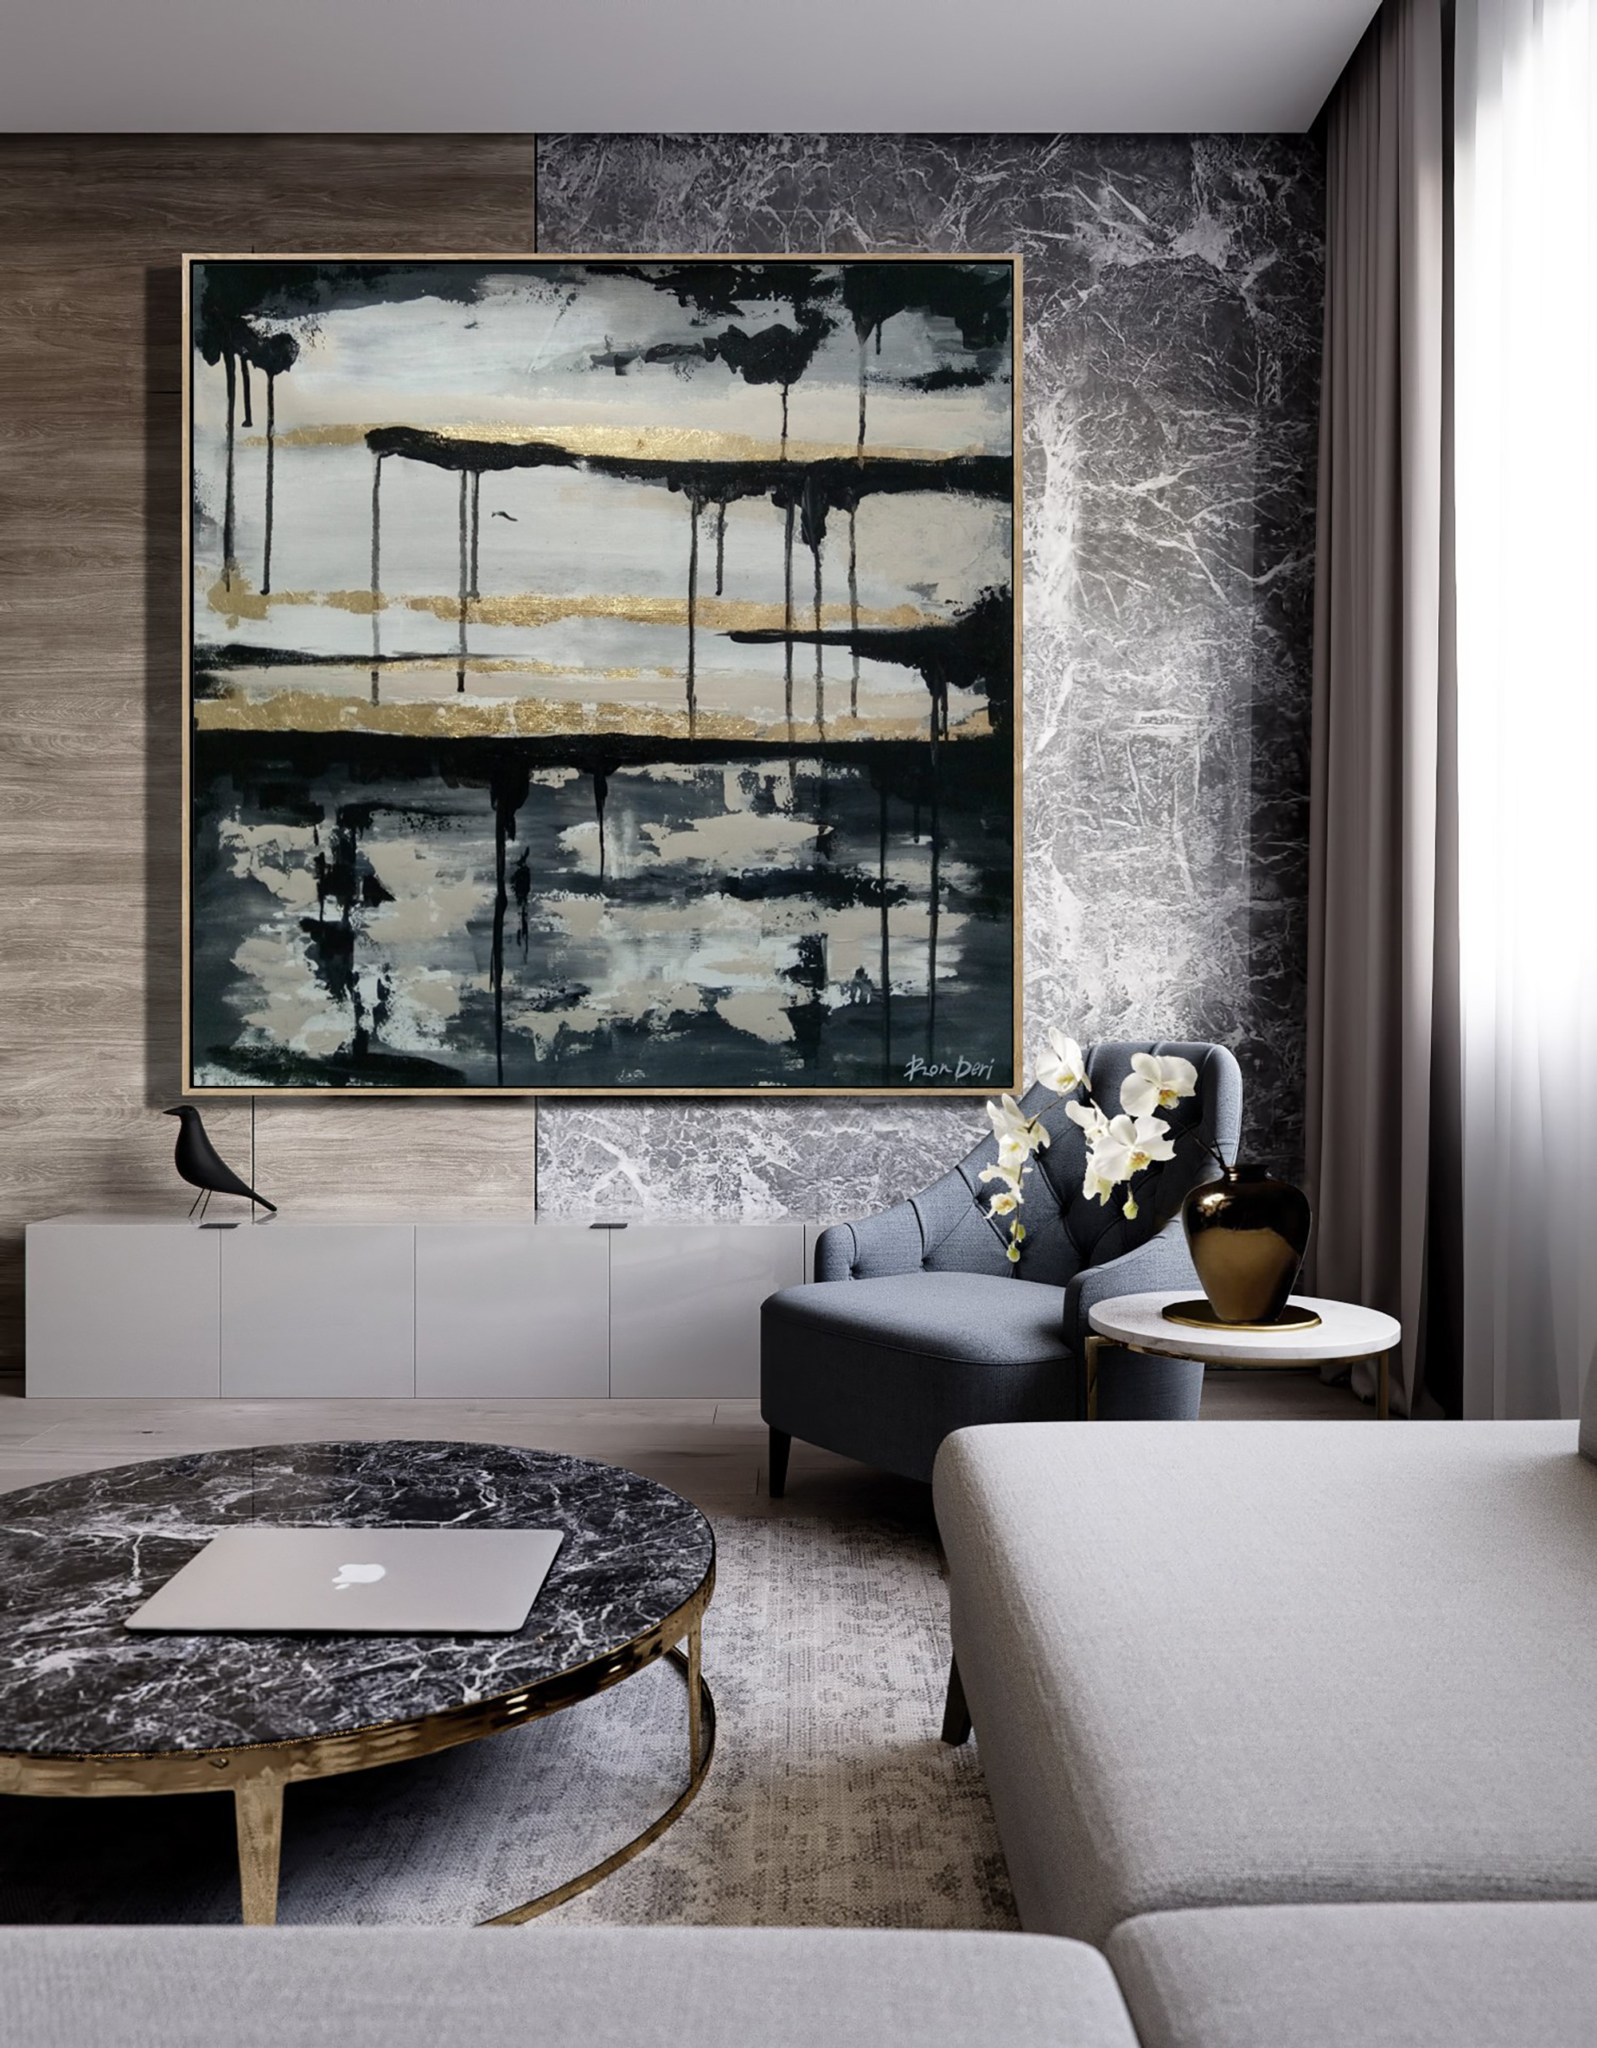 abstract-art-painting-interior-design.jpg